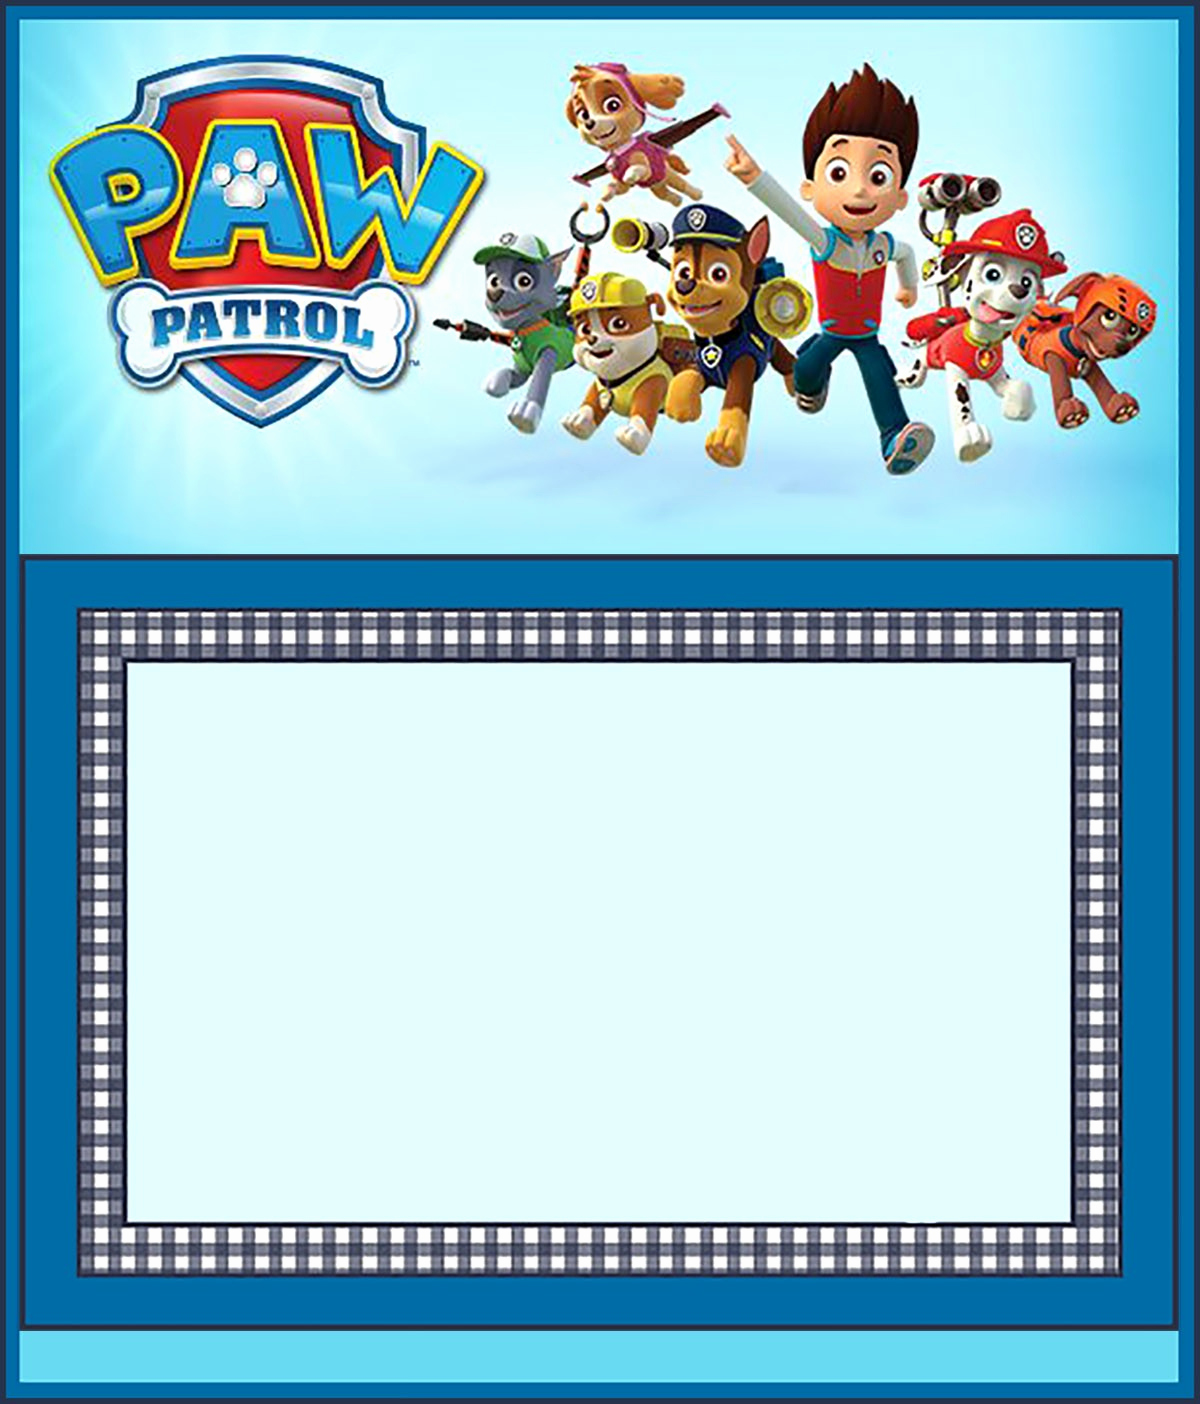 Paw Patrol Invitation Templates Beautiful Make Printable Paw Patrol Invitations Using Free Templates